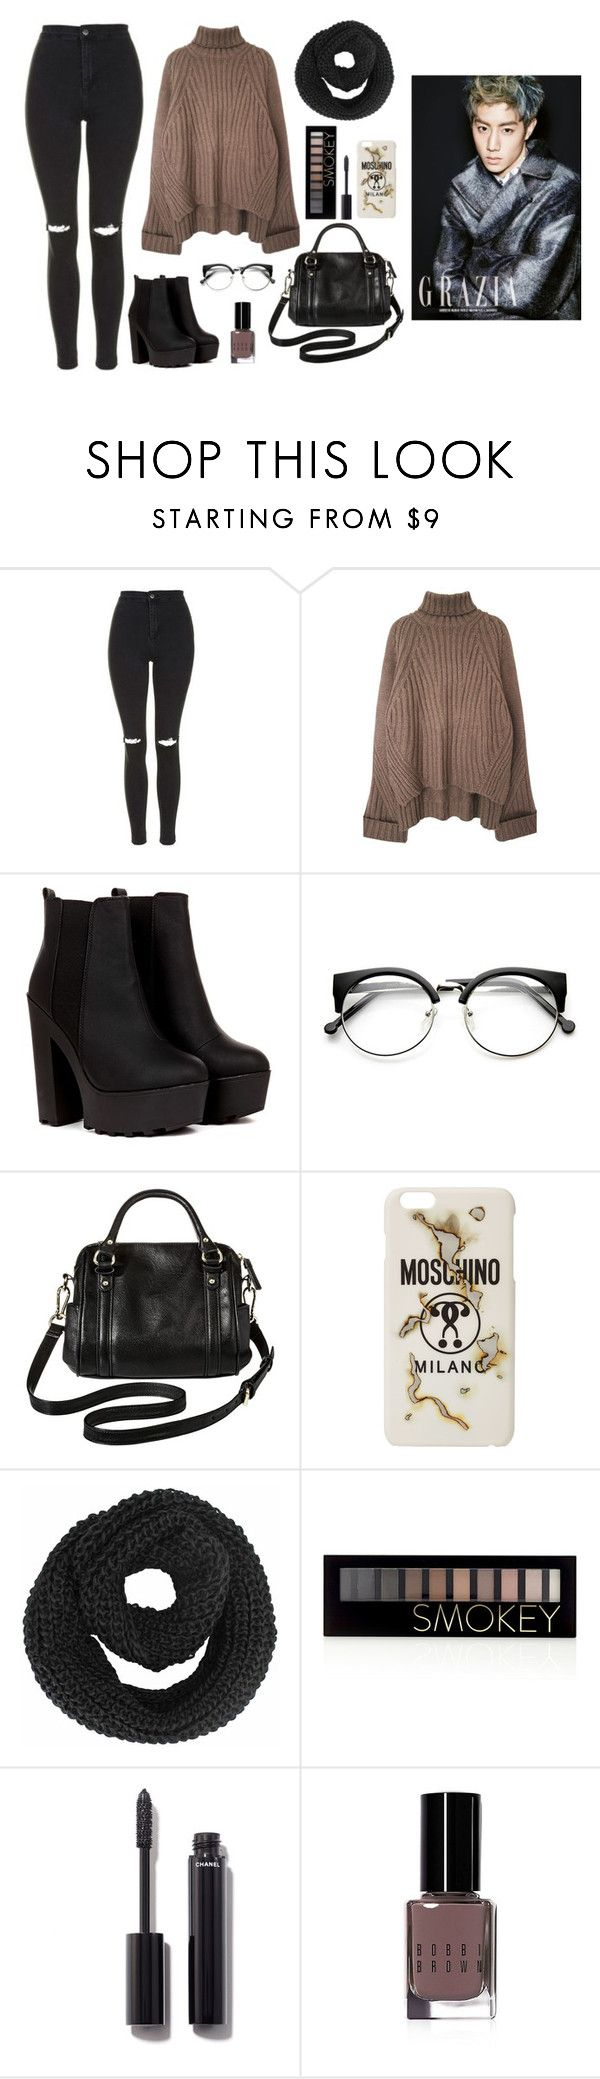 """""""Mark's ideal type (winter)"""" by got7outfits ❤ liked on Polyvore featuring Topshop, Merona, Moschino, Forever 21, Chanel and Bobbi Brown Cosmetics"""